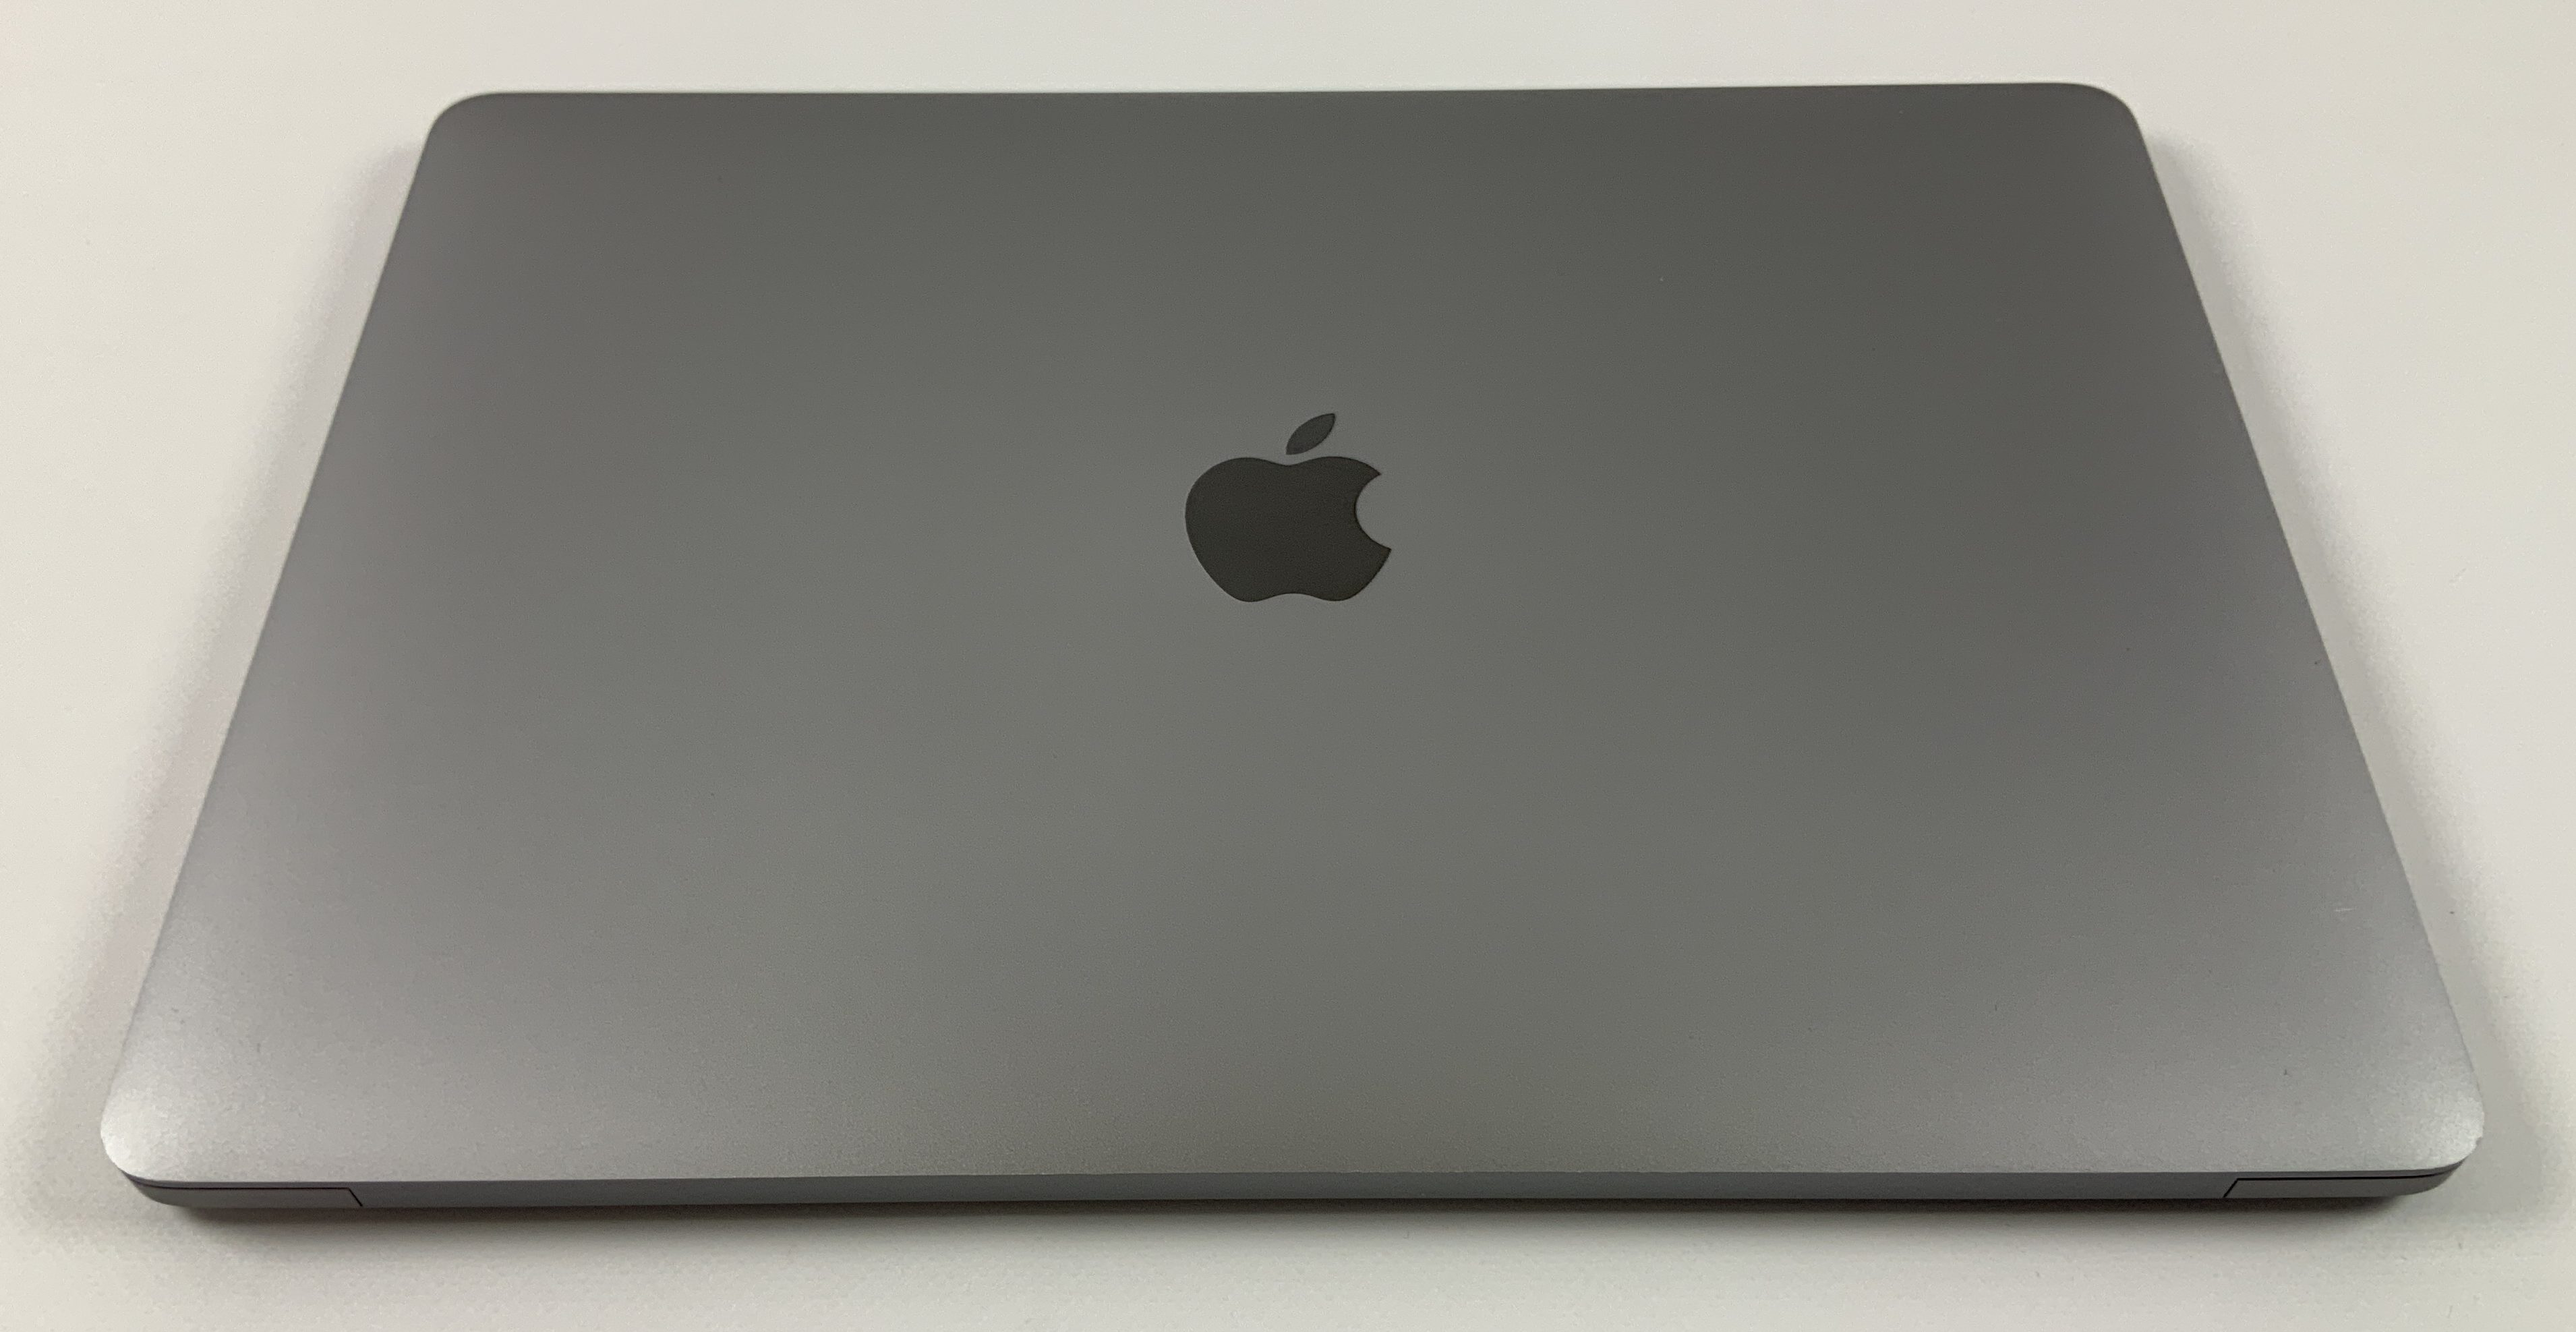 "MacBook Pro 13"" 4TBT Late 2016 (Intel Core i5 2.9 GHz 8 GB RAM 512 GB SSD), Space Gray, Intel Core i5 2.9 GHz, 8 GB RAM, 512 GB SSD, image 2"